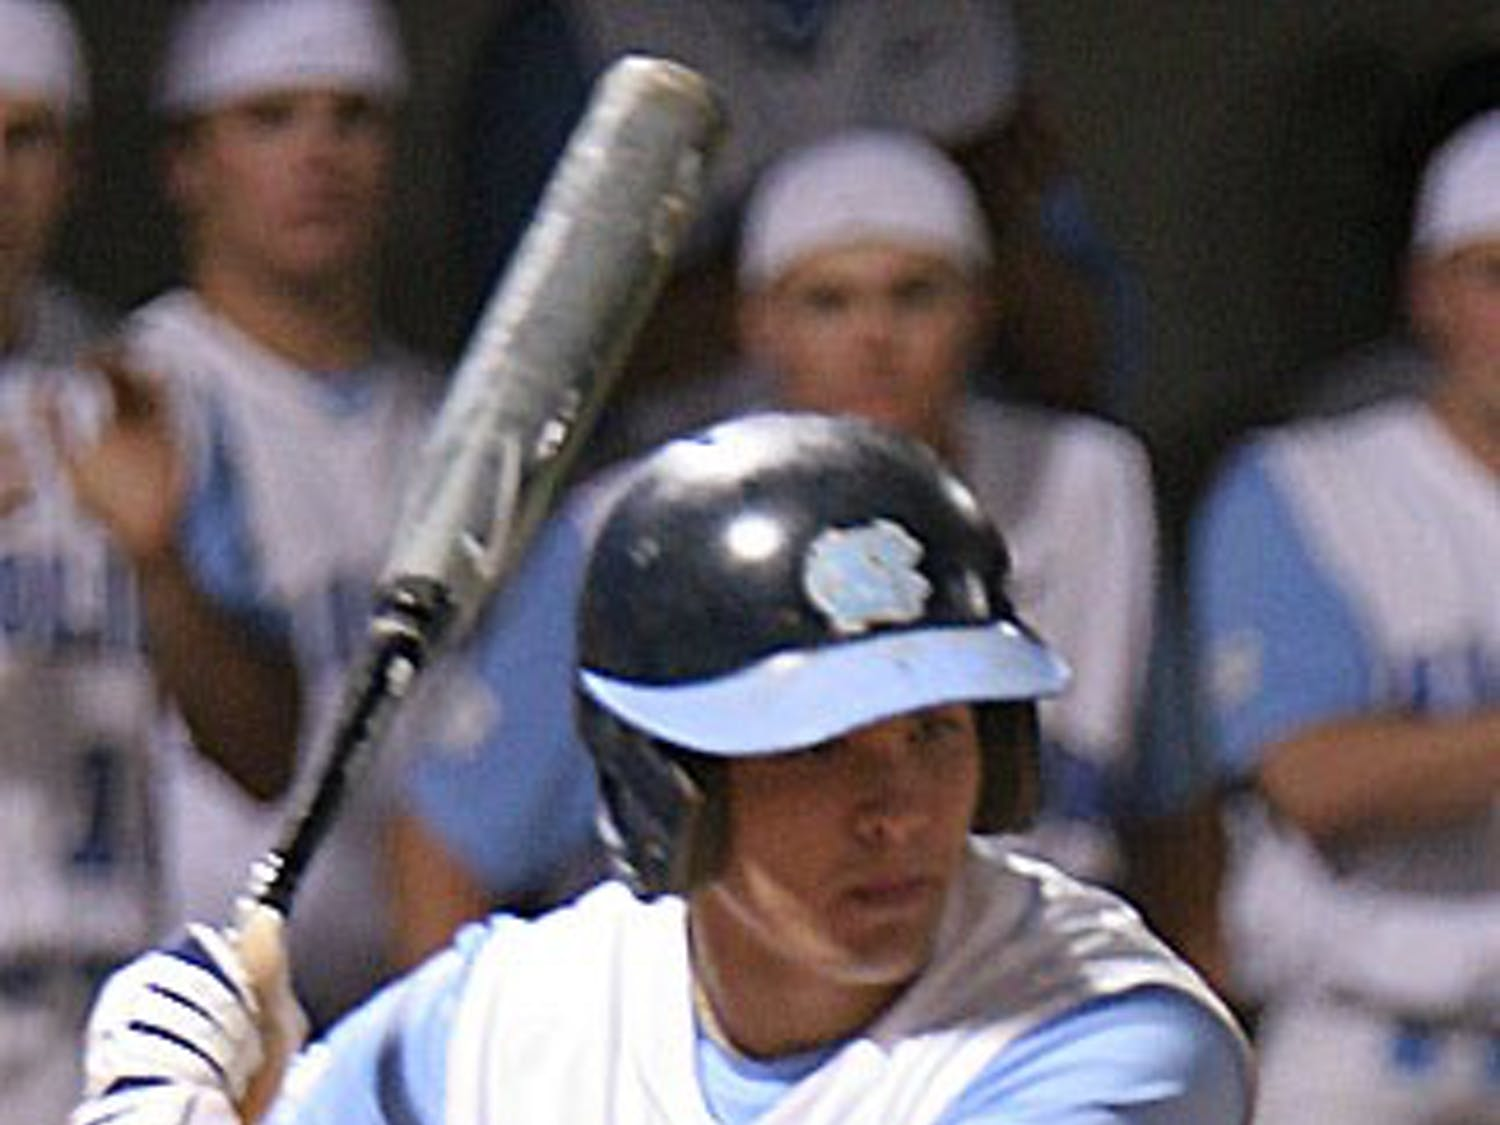 North Carolina freshman Levi Michael struggled Friday against Miami but had three hits with three RBI in the series? next two games.